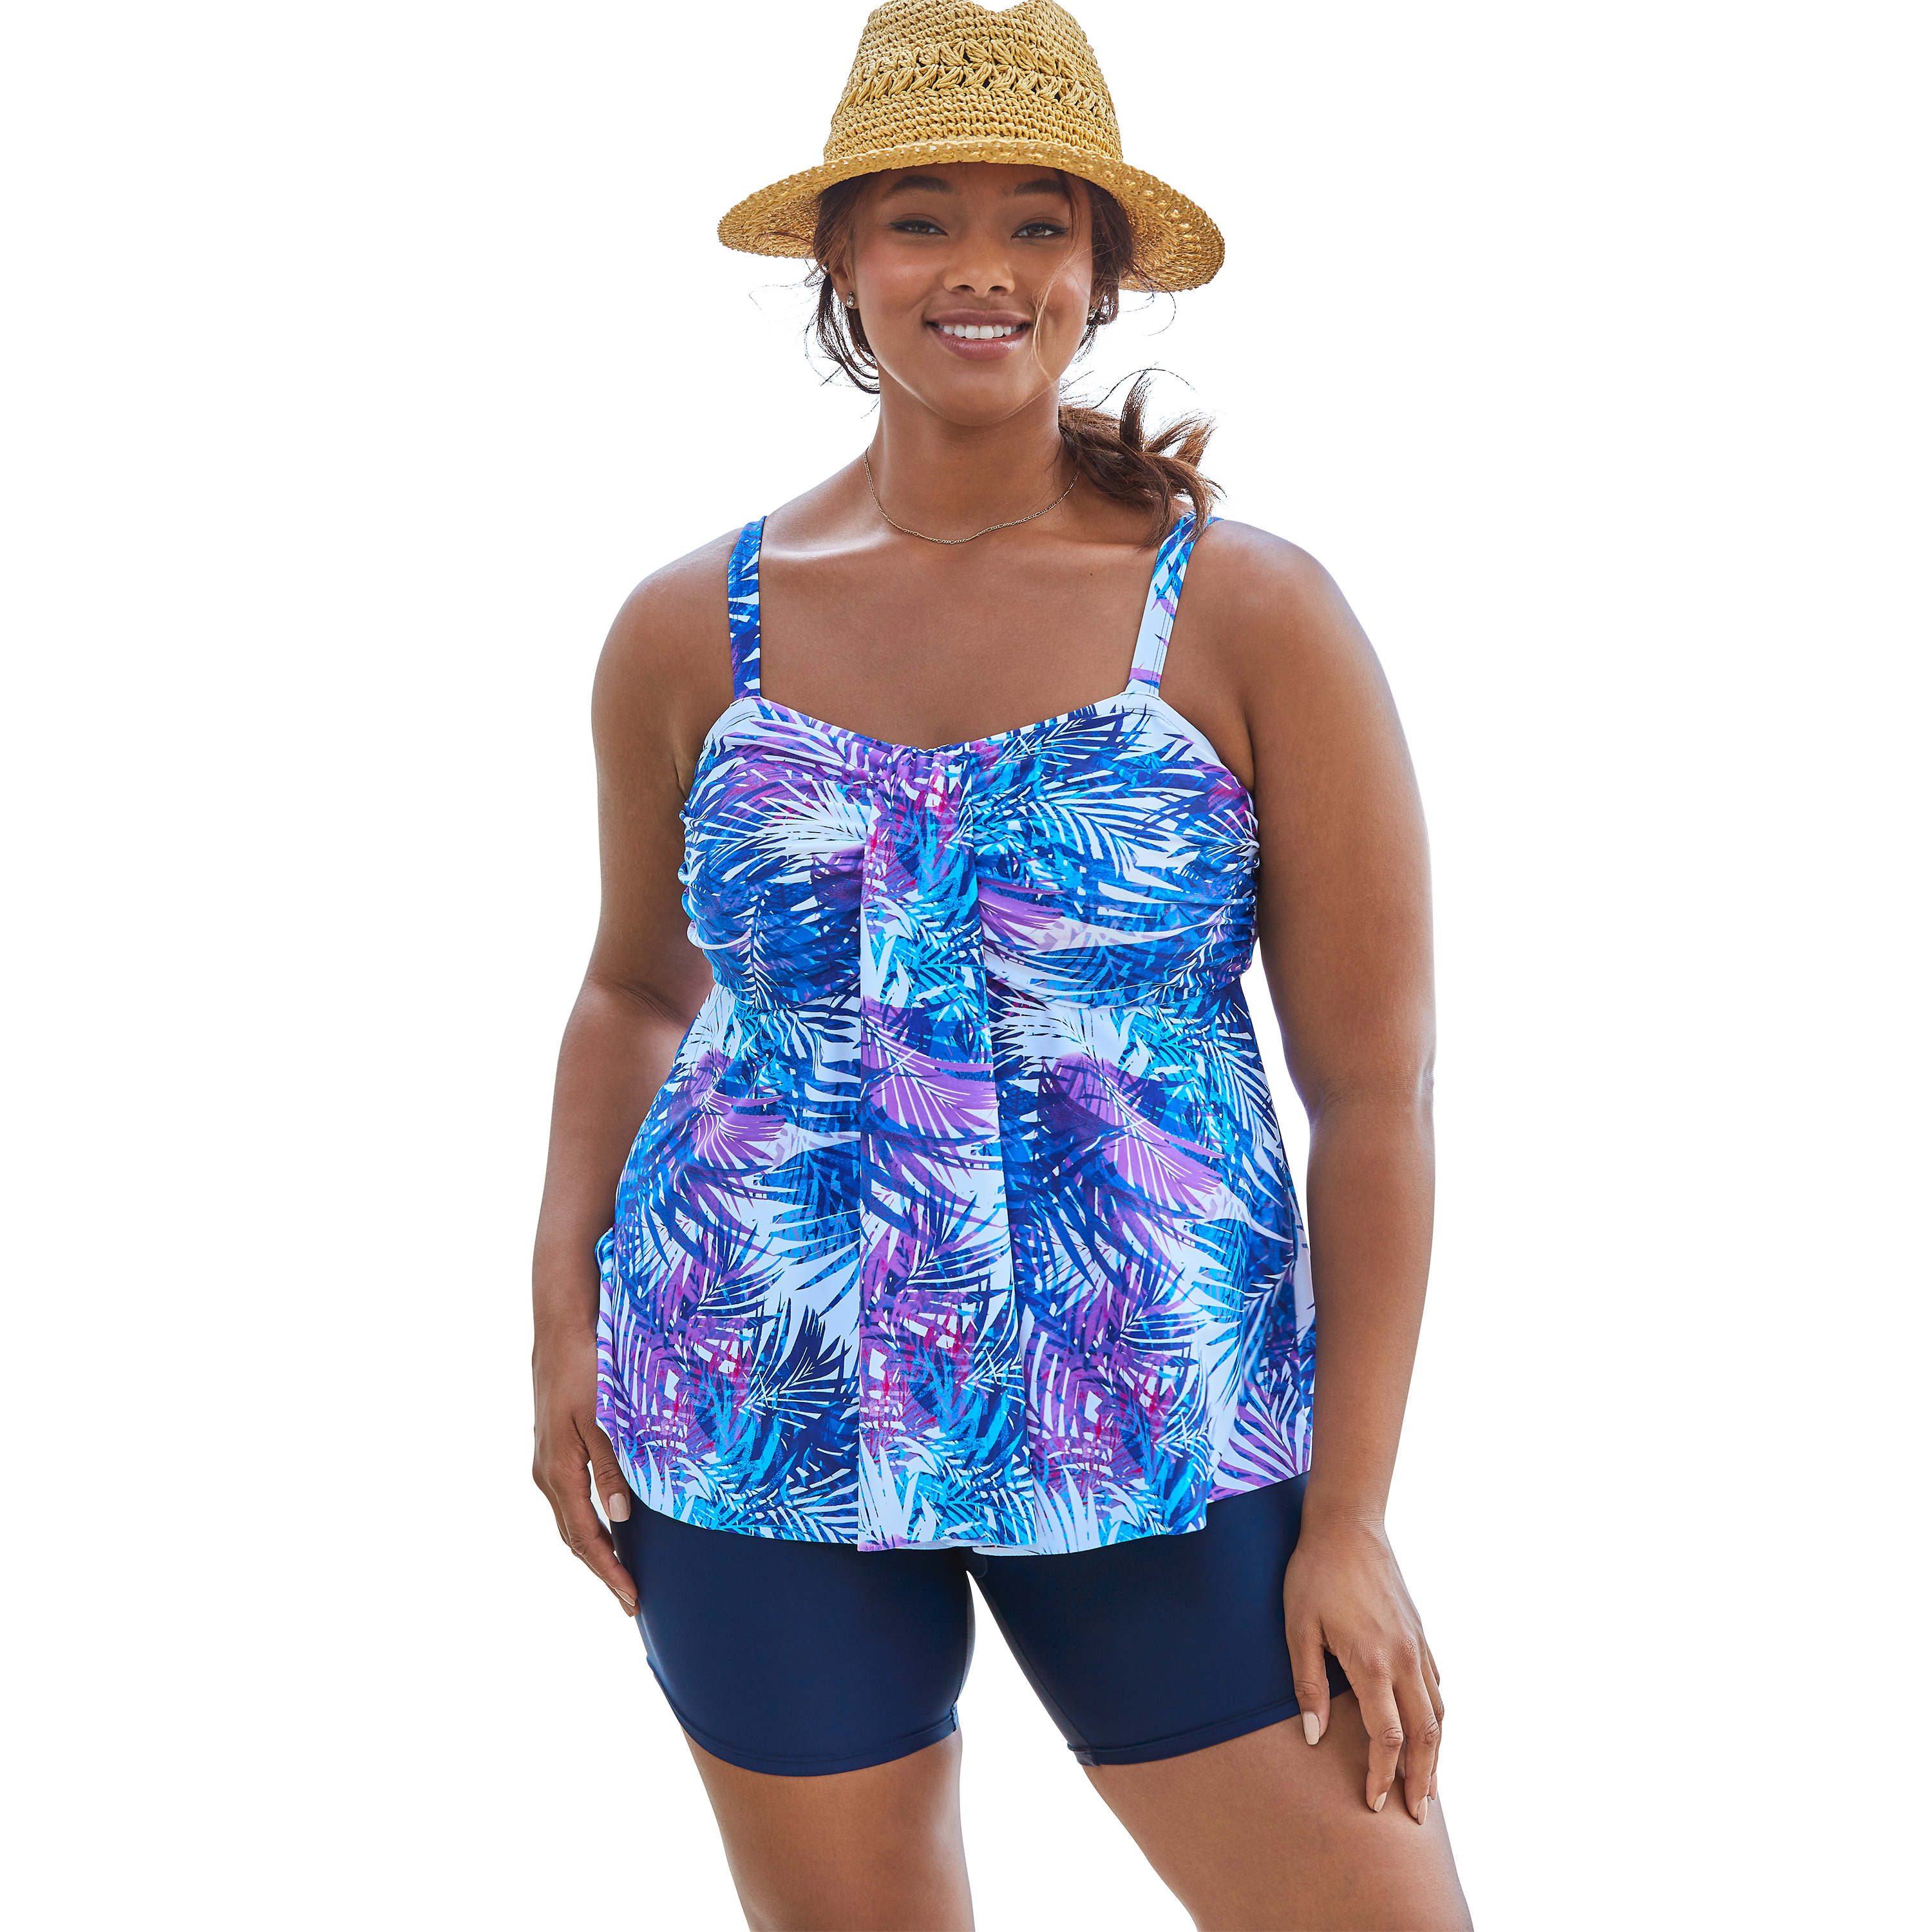 Plus Size Women's Flyaway Tankini Top with Bust Support by Swim 365 in Multi Color Leaves